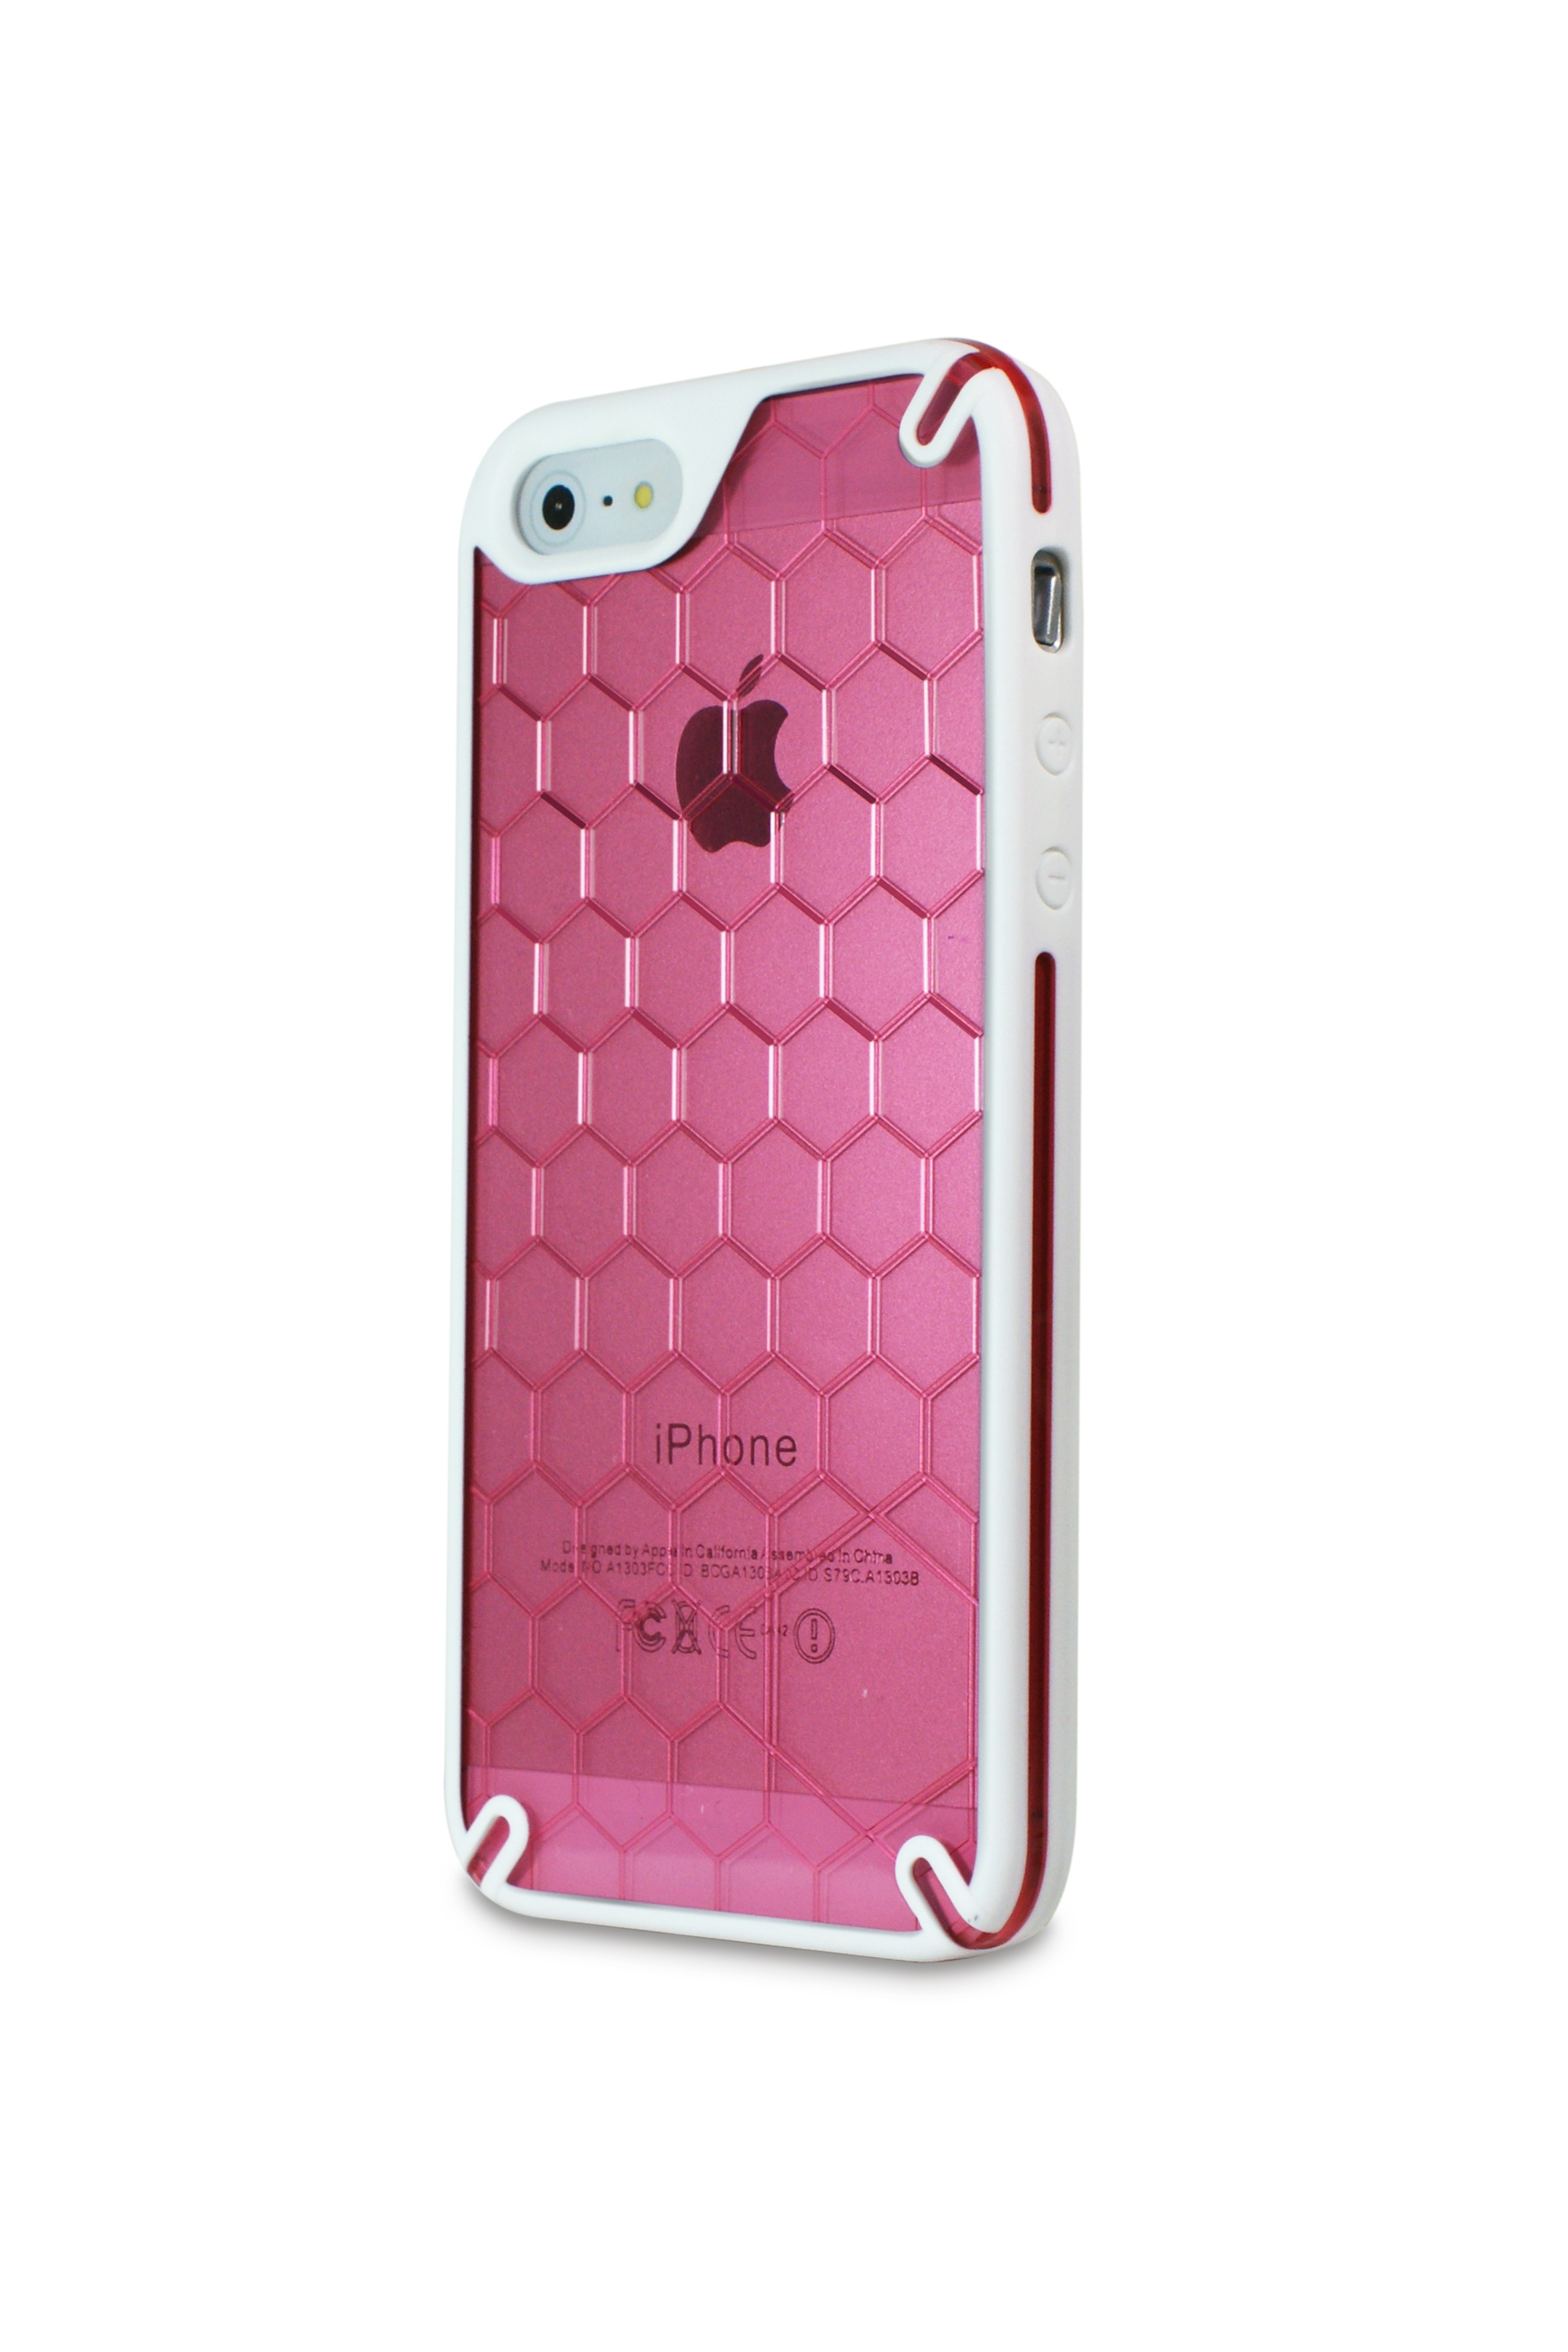 Ozone  Bee Hive iPhone 5 Cover Pink (HT-IP5-03-HP)